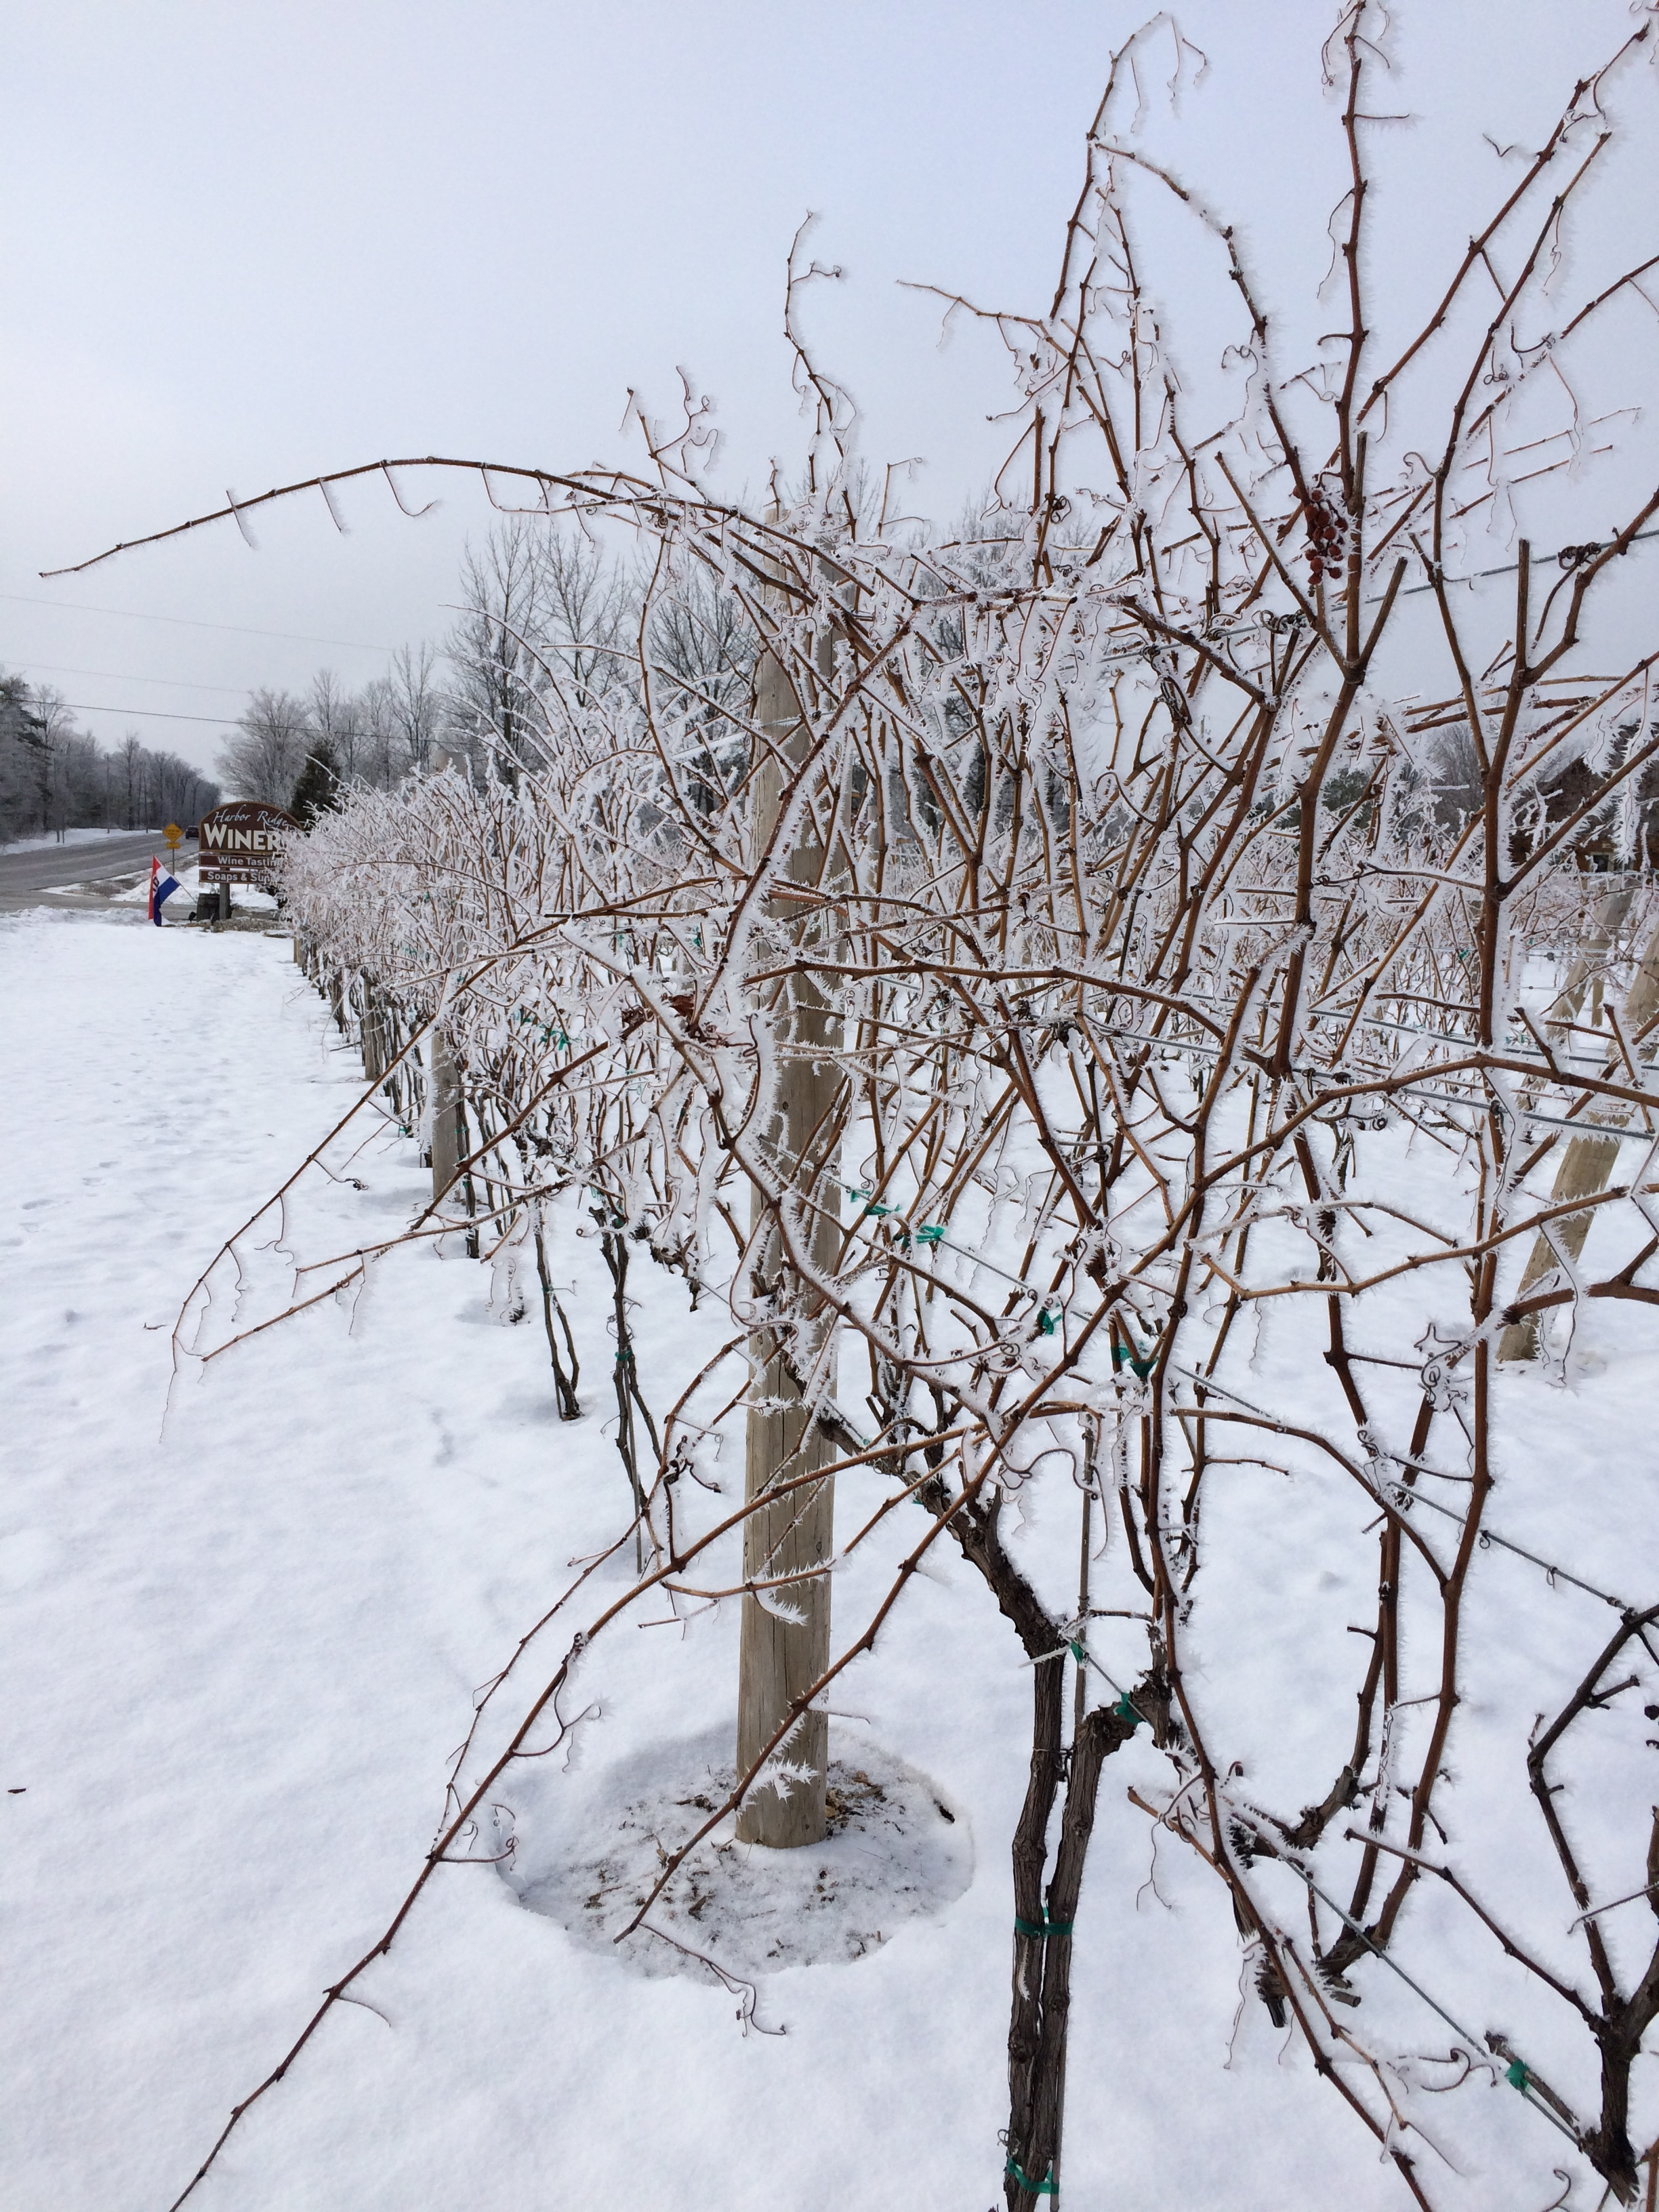 Pictures of our vines in Door County during Winter.